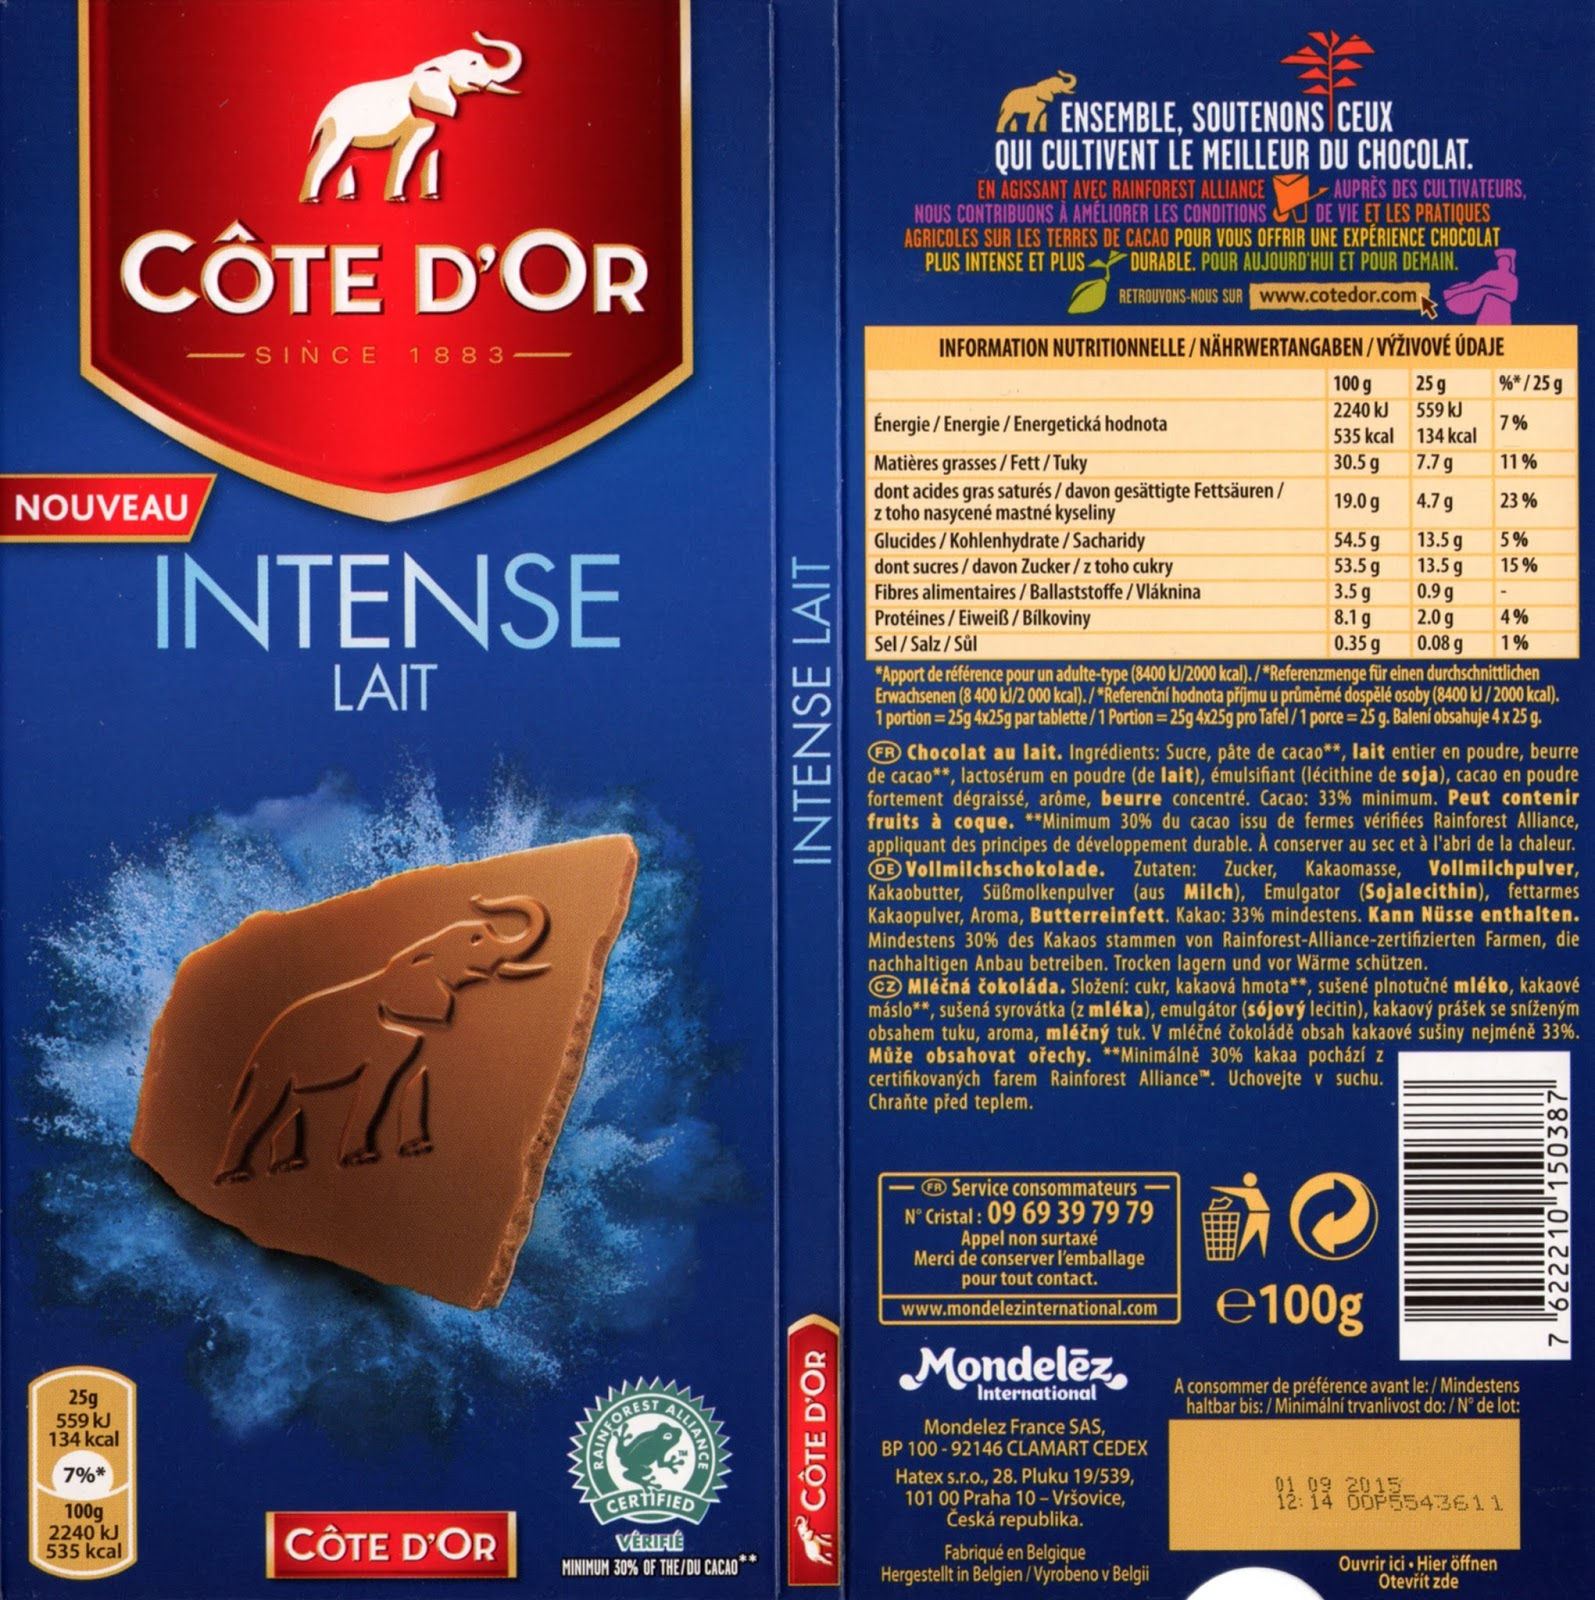 tablette de chocolat lait dégustation côte d'or intense lait